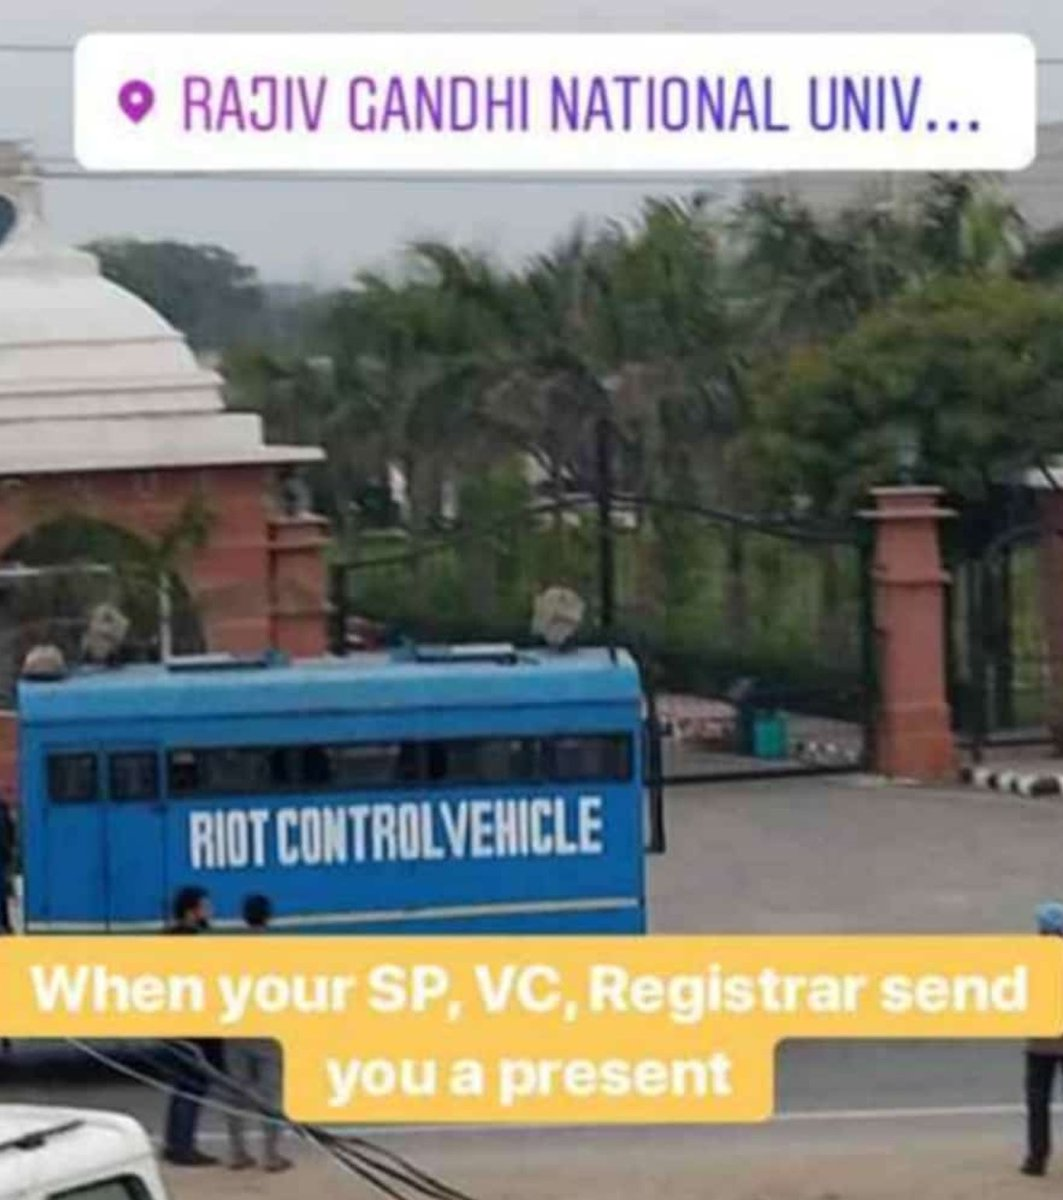 We don&#39;t need riots. We just need rights. #justiceforrgnul #FreeRGNUL #wewantjustice <br>http://pic.twitter.com/CZxL1YcbZc